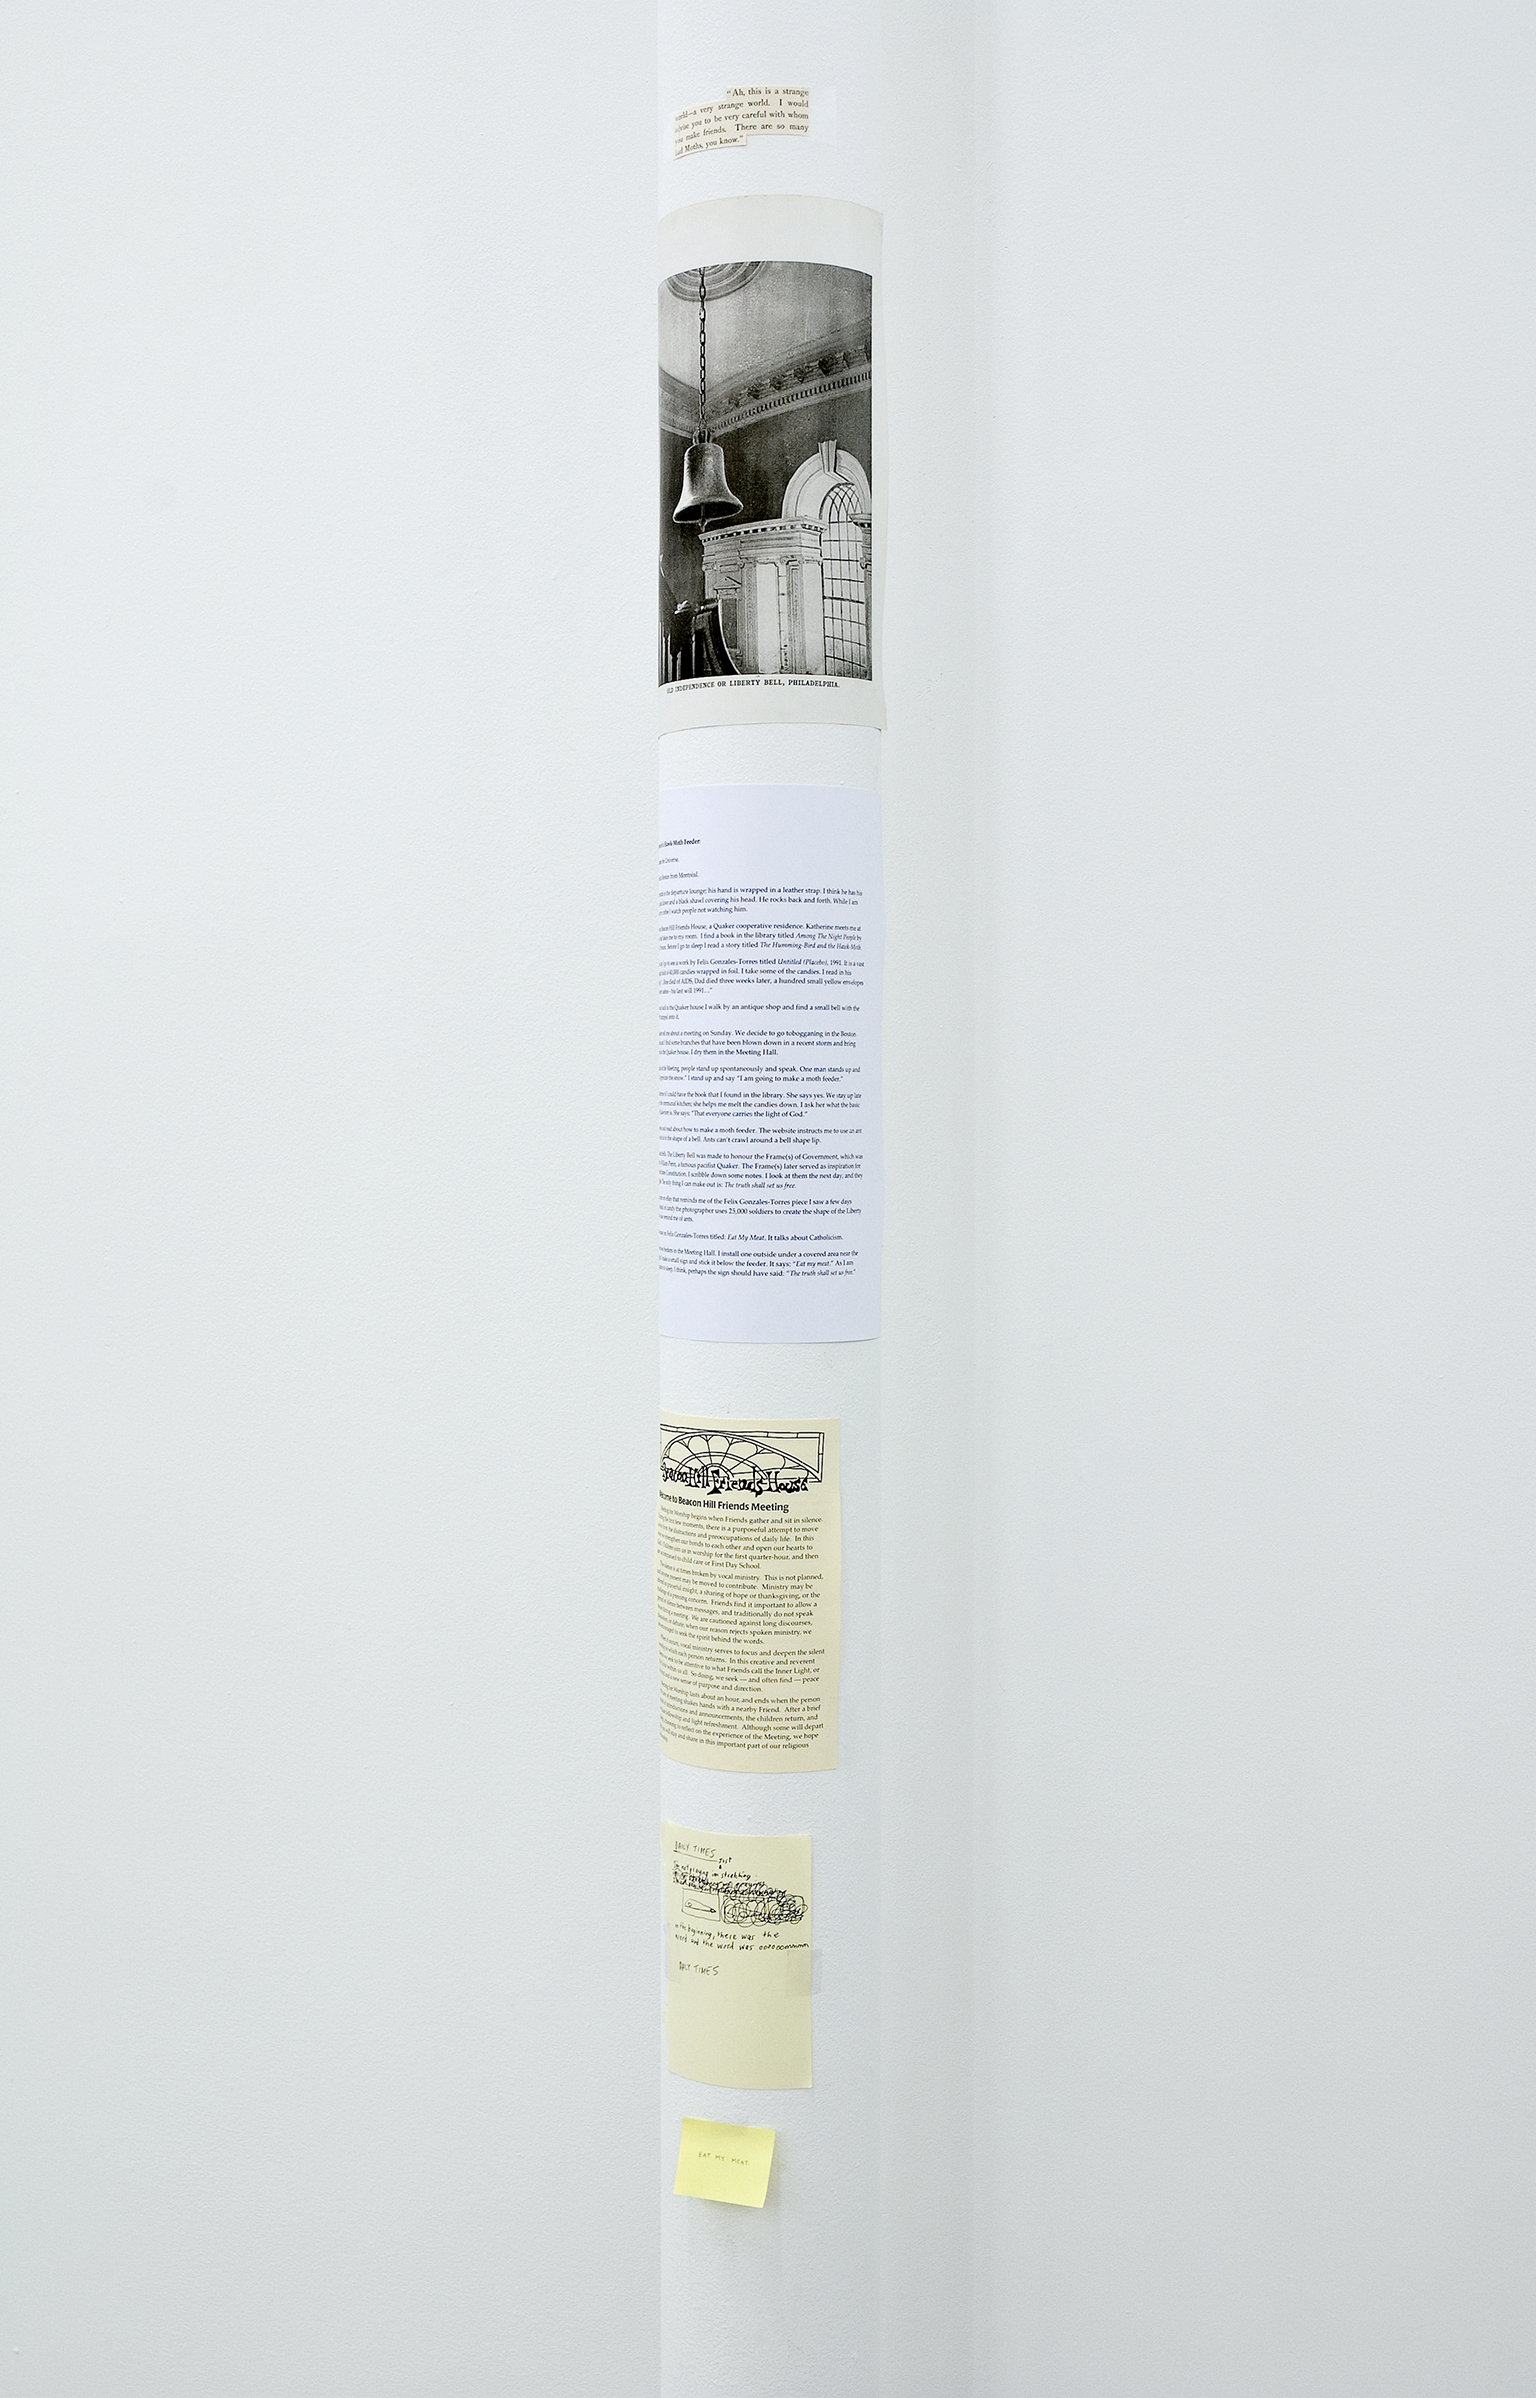 Geoffrey Farmer, I'm Not Praying I'm Just Stretching (detail), 2009, mixed media, dimension variable by